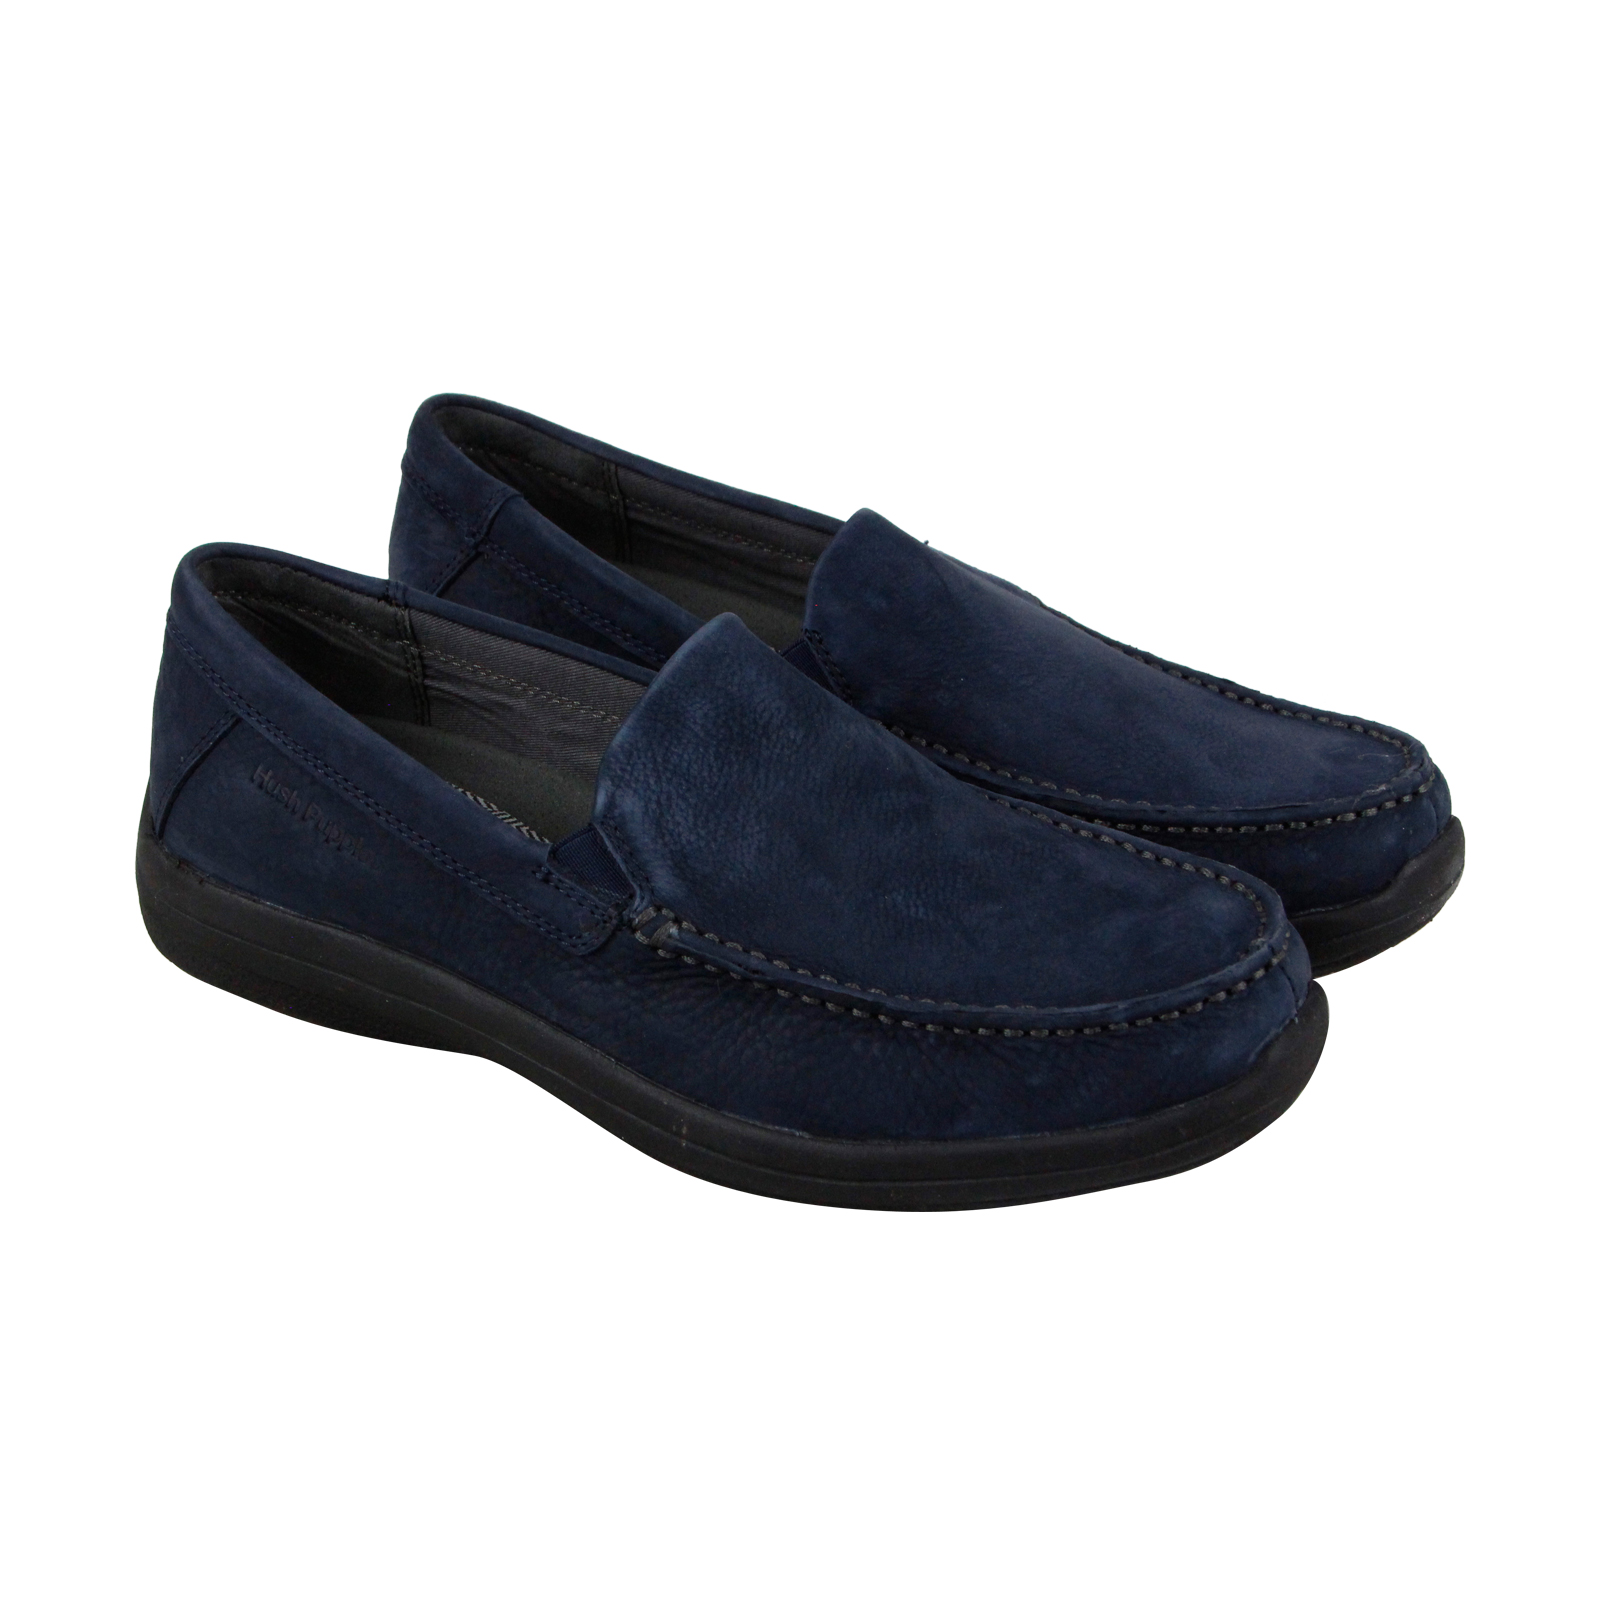 Hush Puppies Brevis Patterson Mens Blue Leather Casual Dress Loafers Shoes